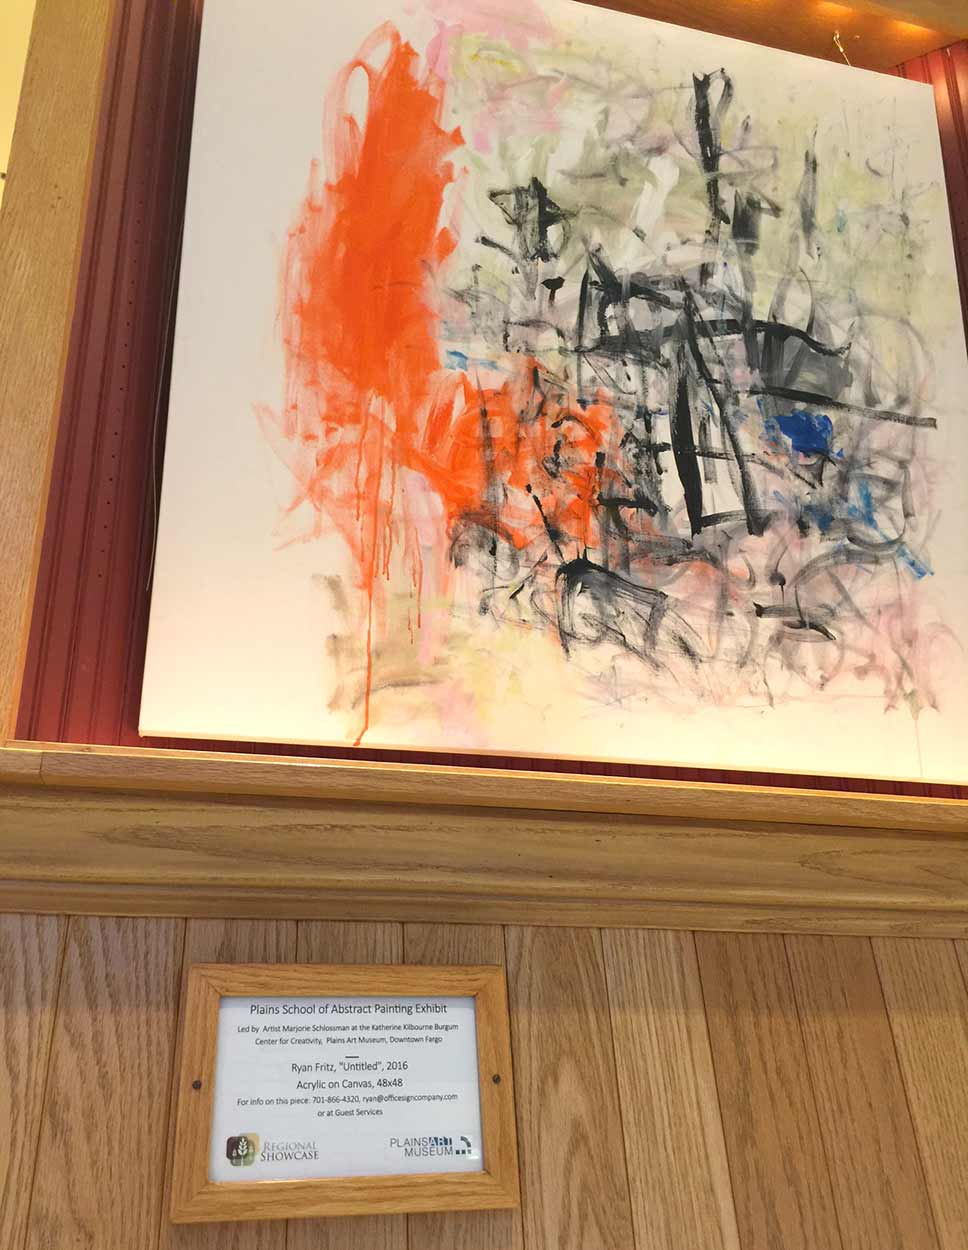 Abstract Painting at West Acres Mall - 2017